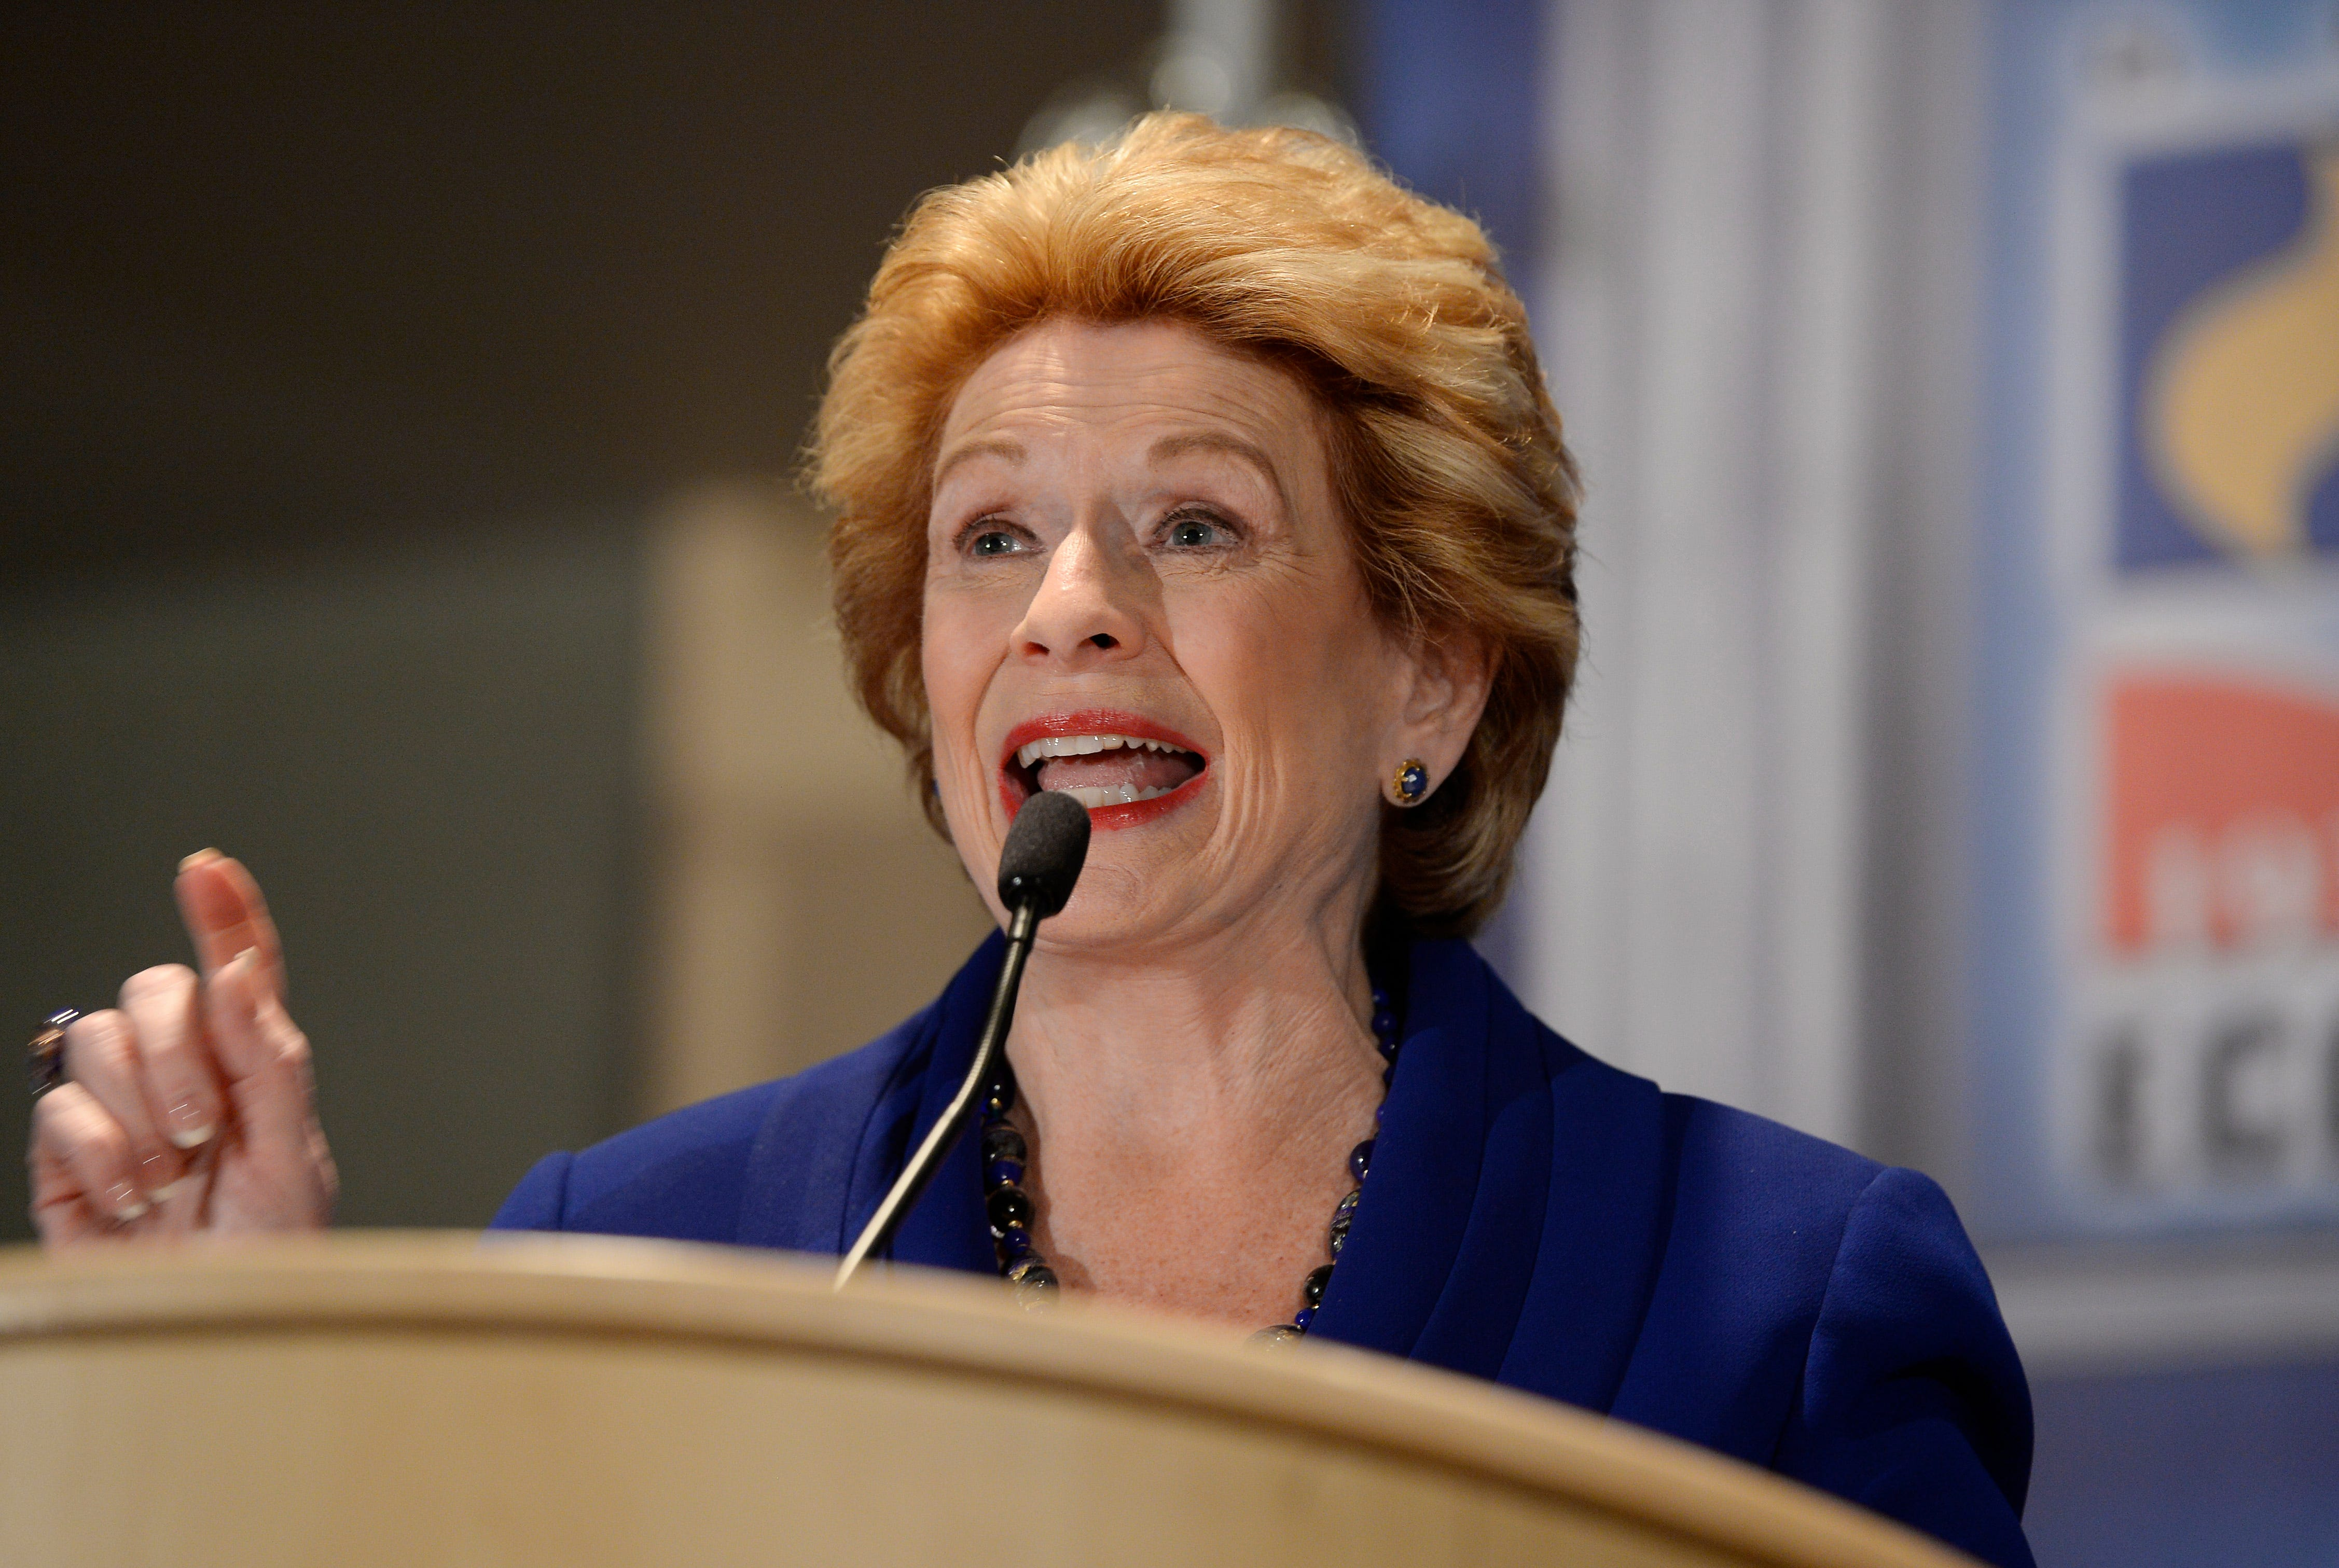 U.S. Sen. Debbie Stabenow answers a question during the debate Monday at the Detroit Economic Club.